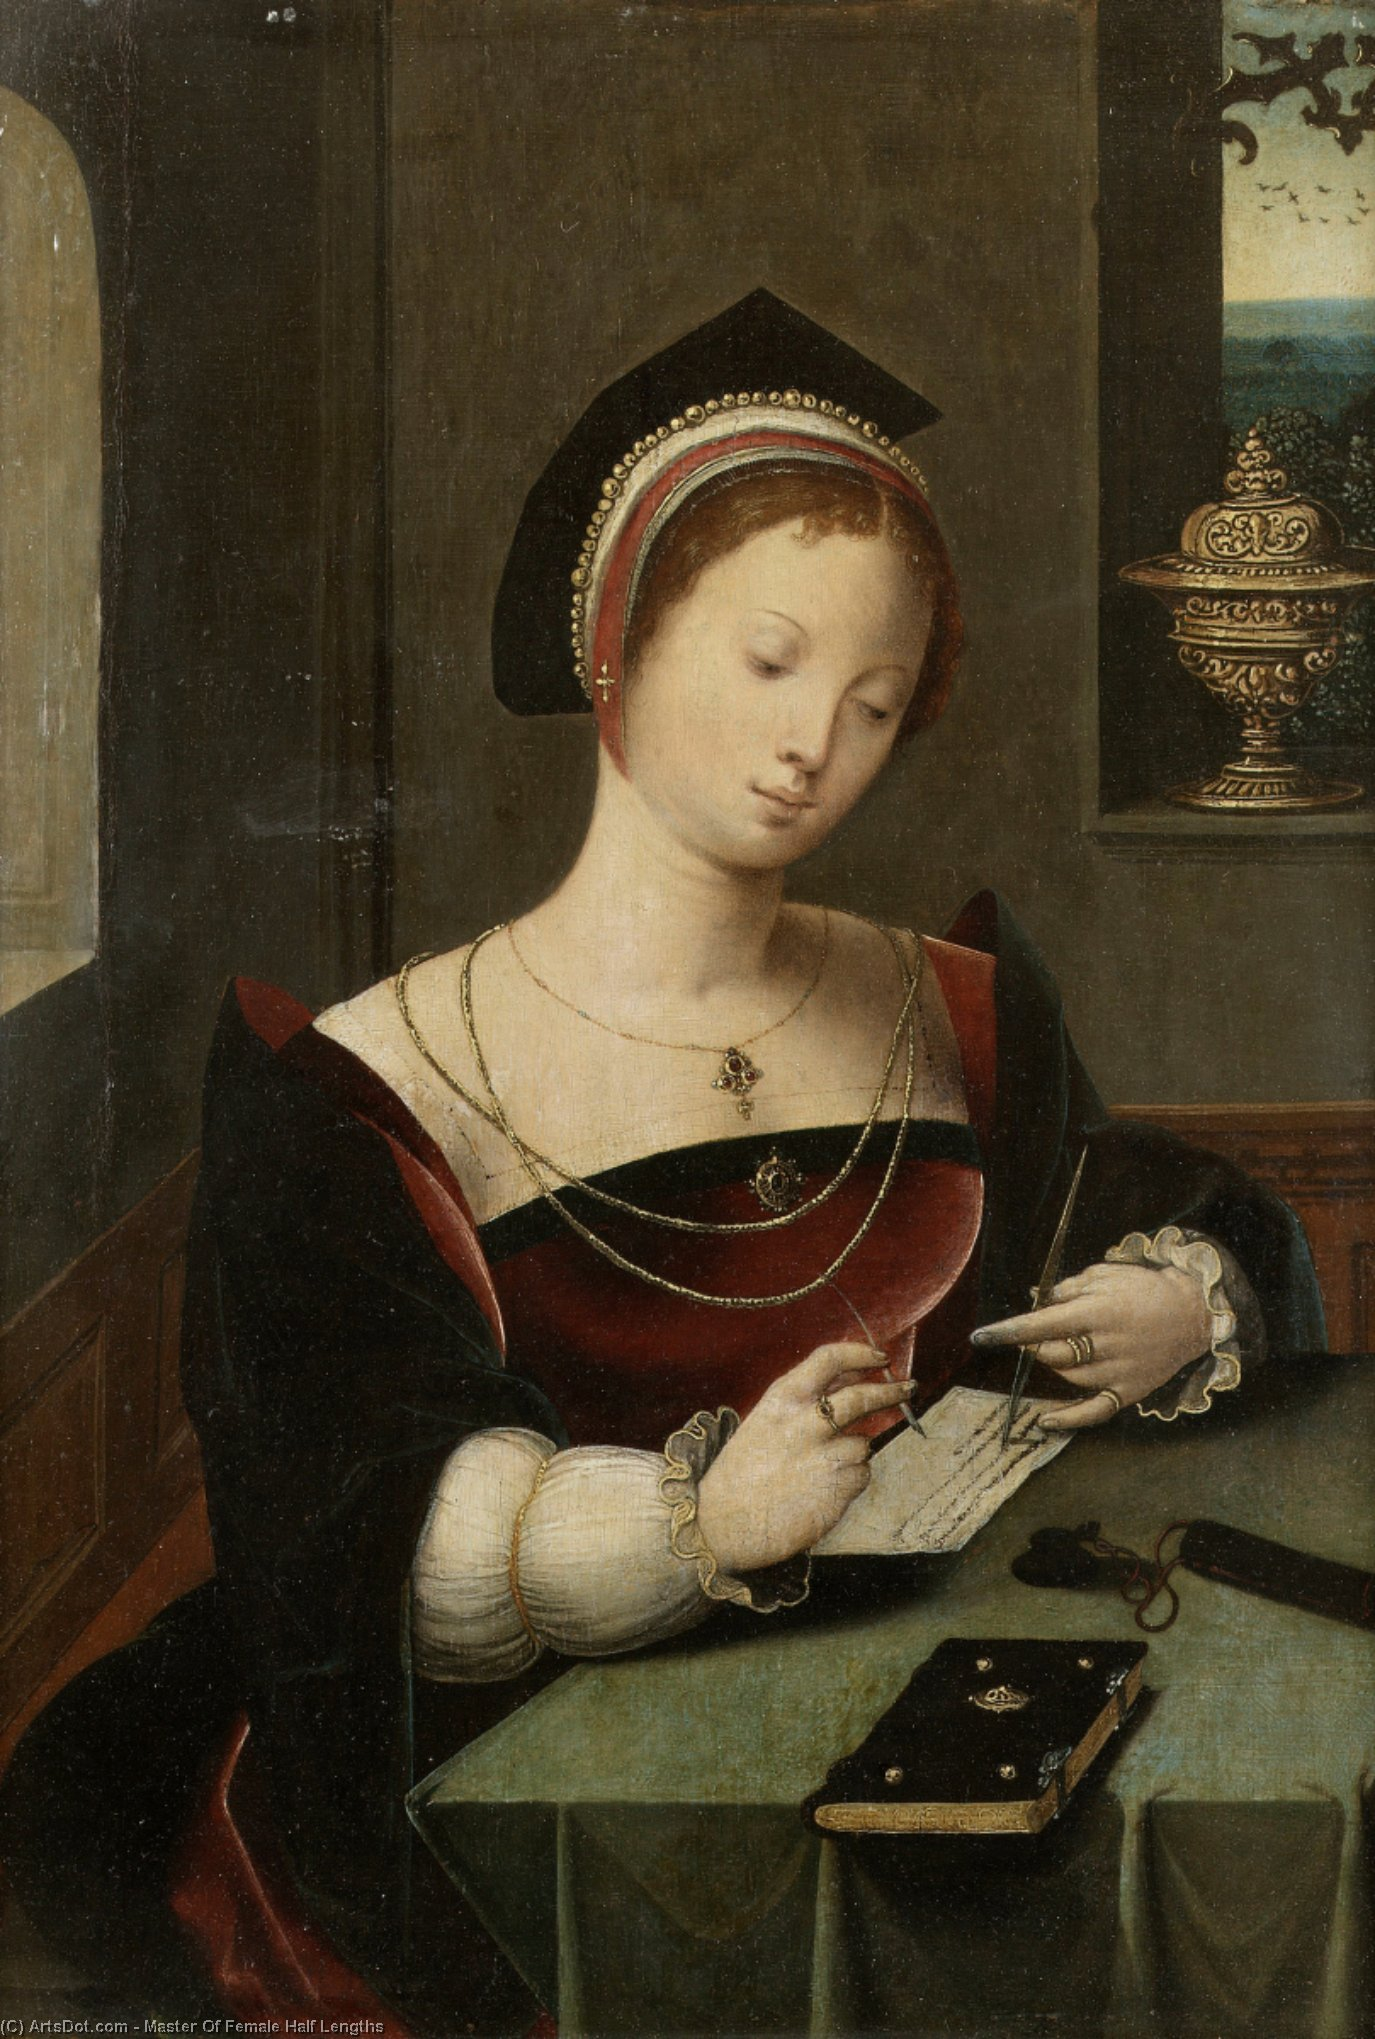 A woman as the Magdalen writing at a table in an interior. by Master Of Female Half Lengths | Oil Painting | ArtsDot.com